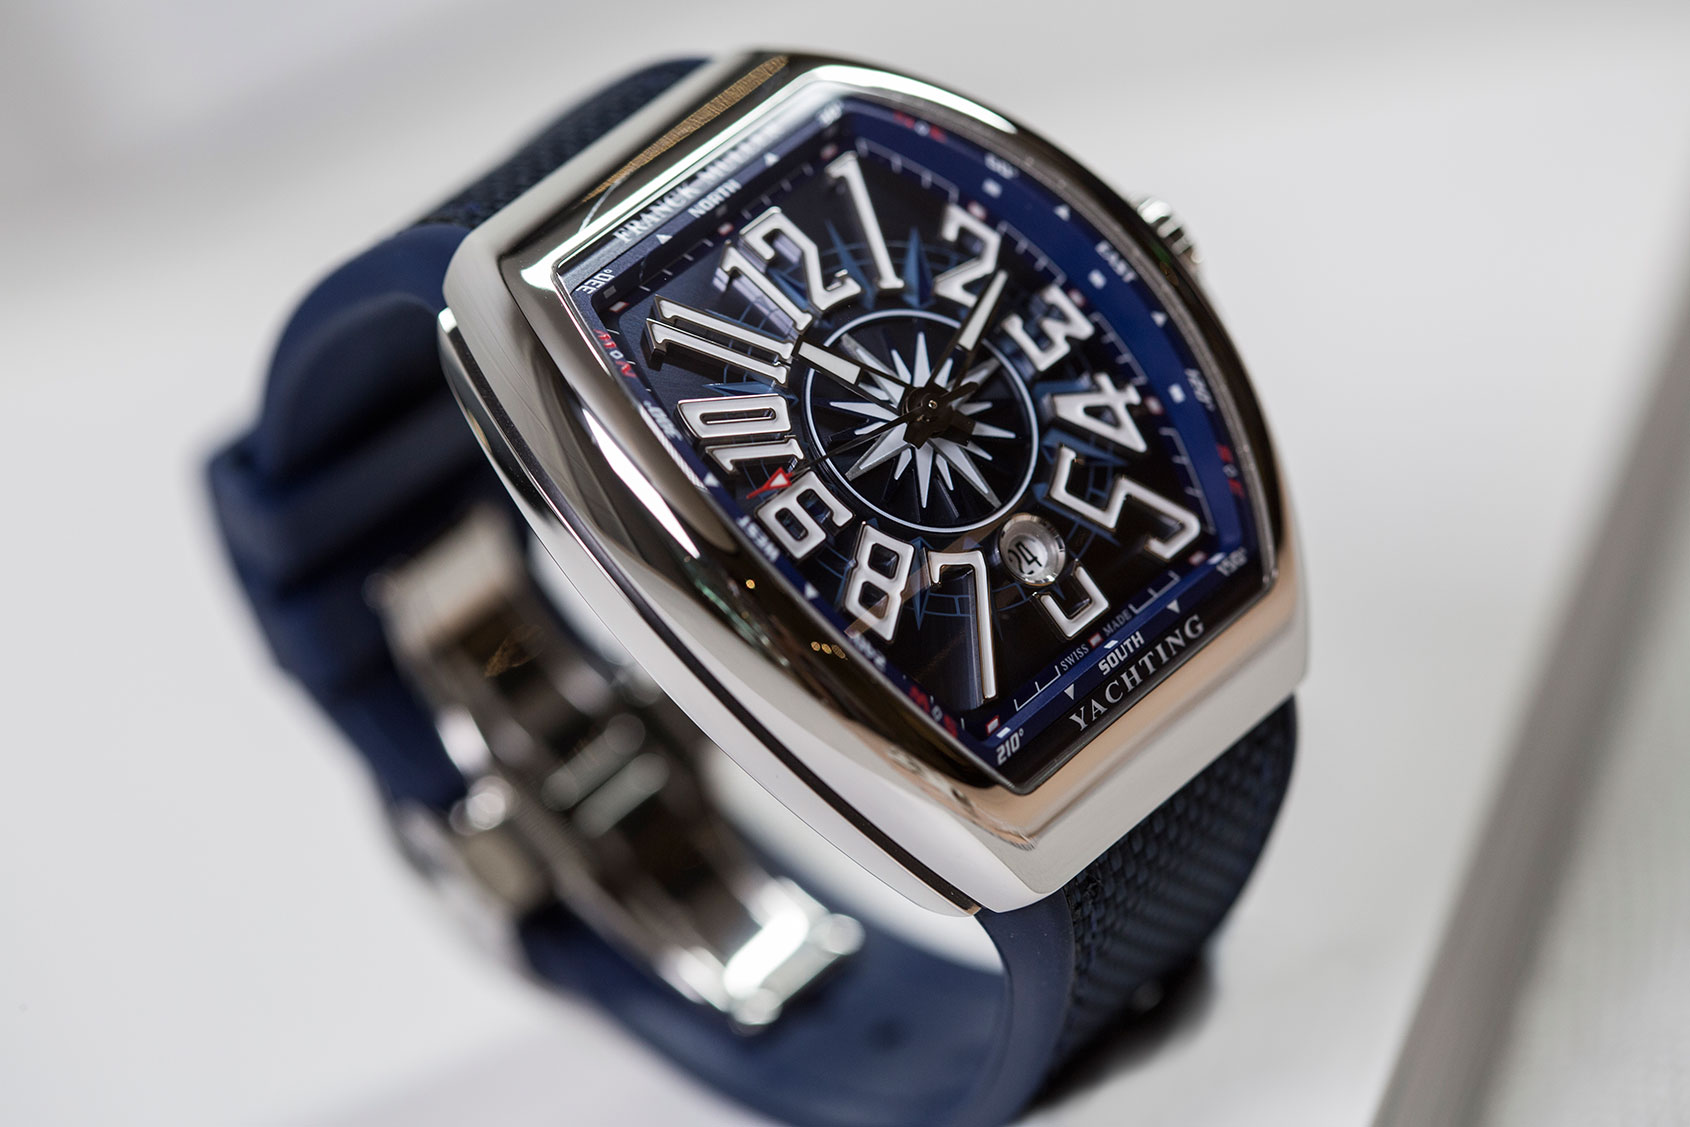 EDITOR'S PICK: The seafaring origins of the Franck Muller Yachting collection